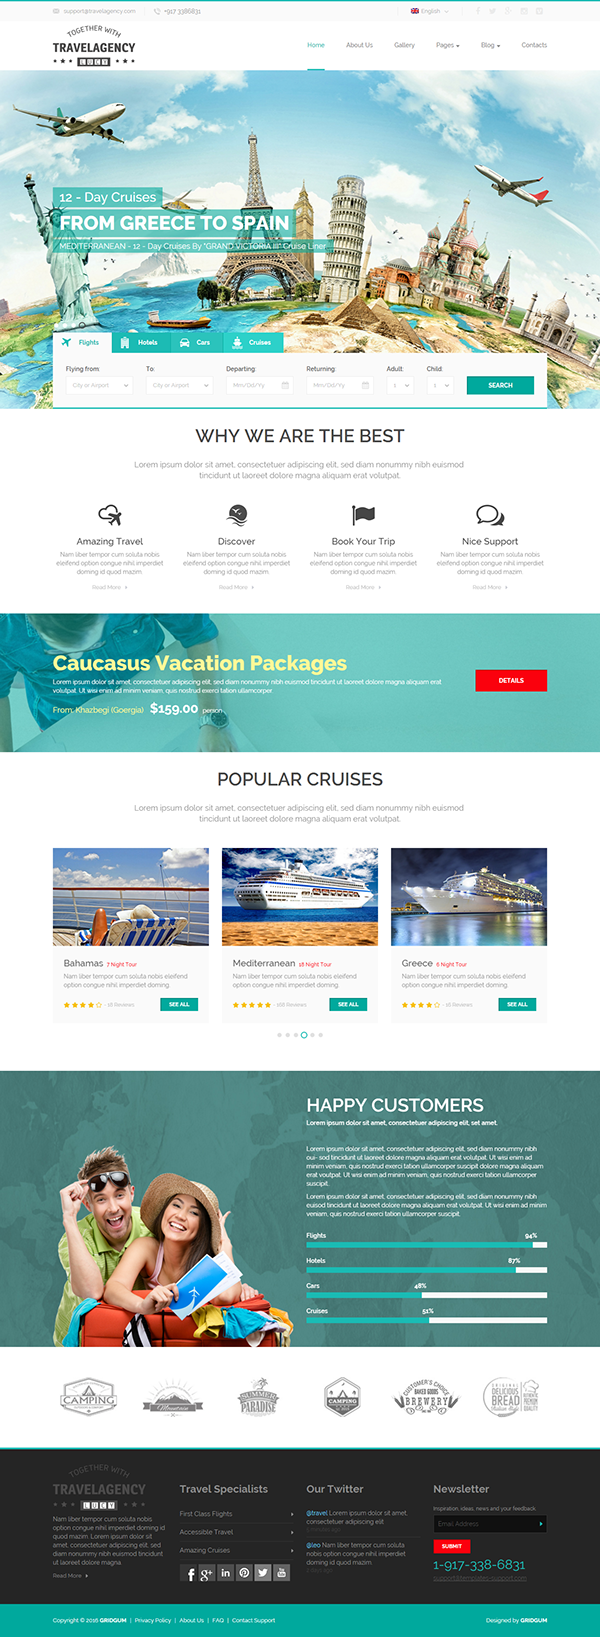 Travel Agency Html Template Website Template 300111901 Download Travel Agency Html Template Travel Agency Website Web Layout Design Travel Website Design